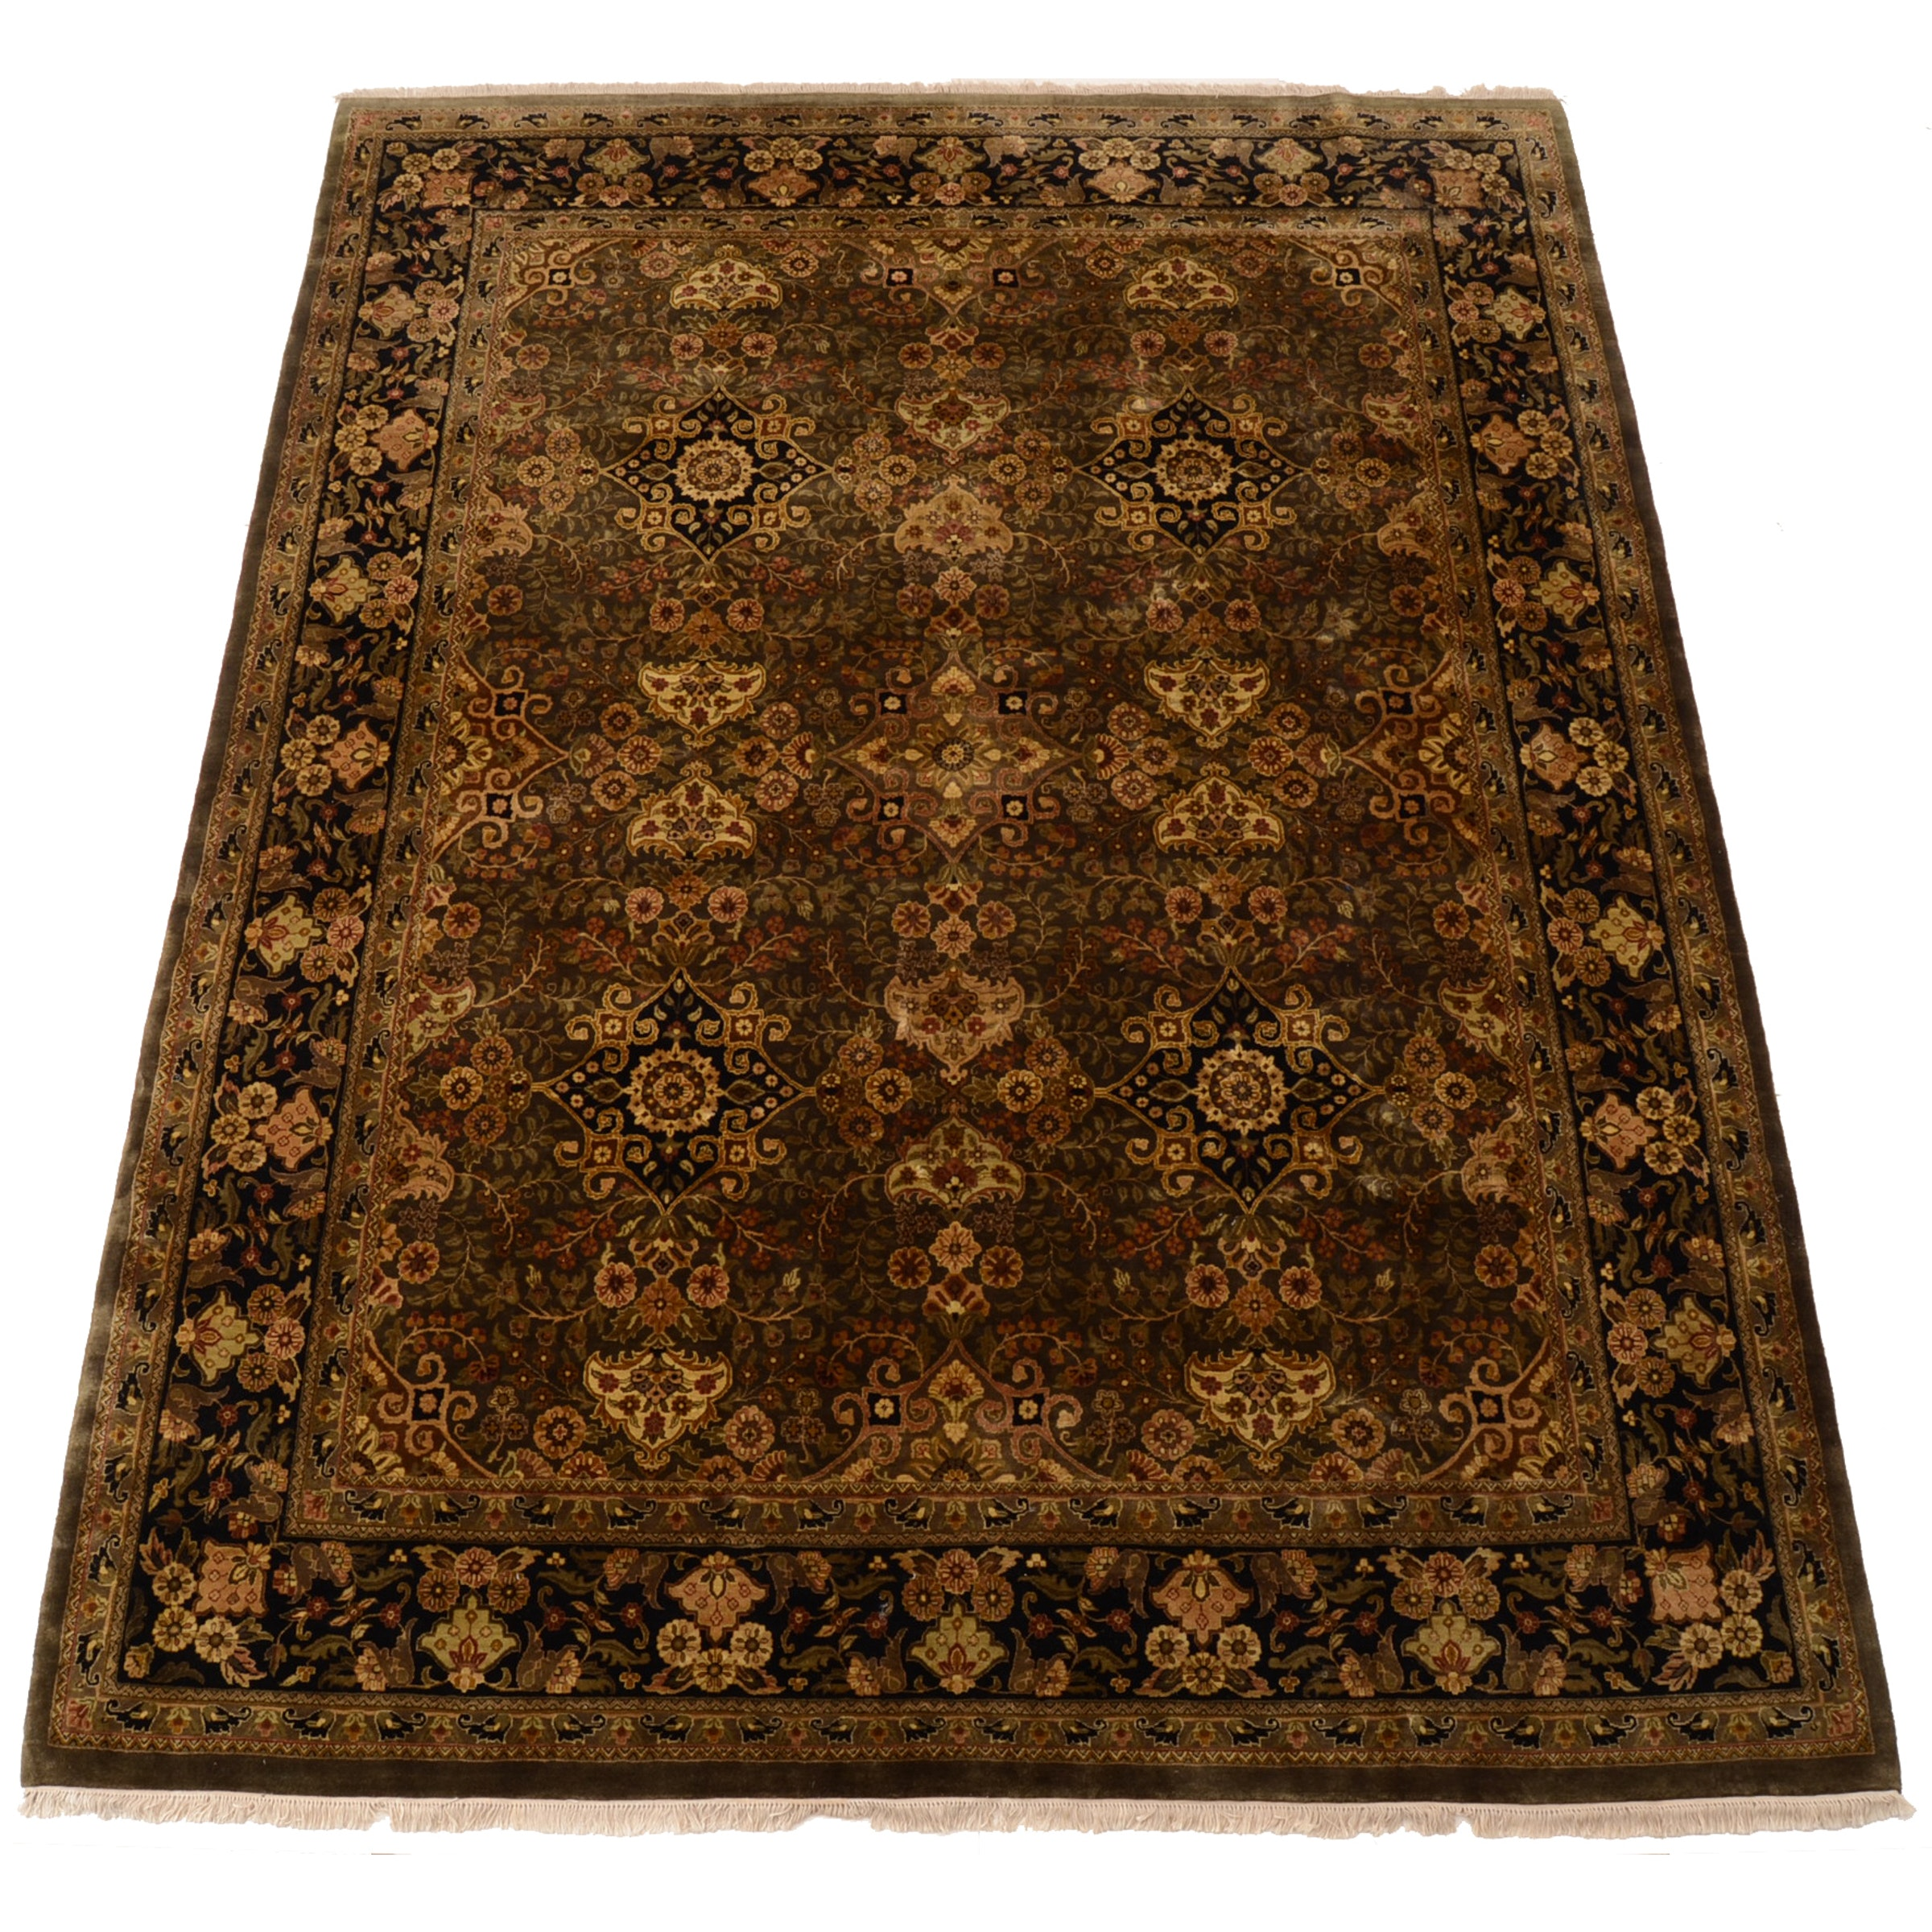 Hand-Knotted Indian Wool Area Rug by Kaleen